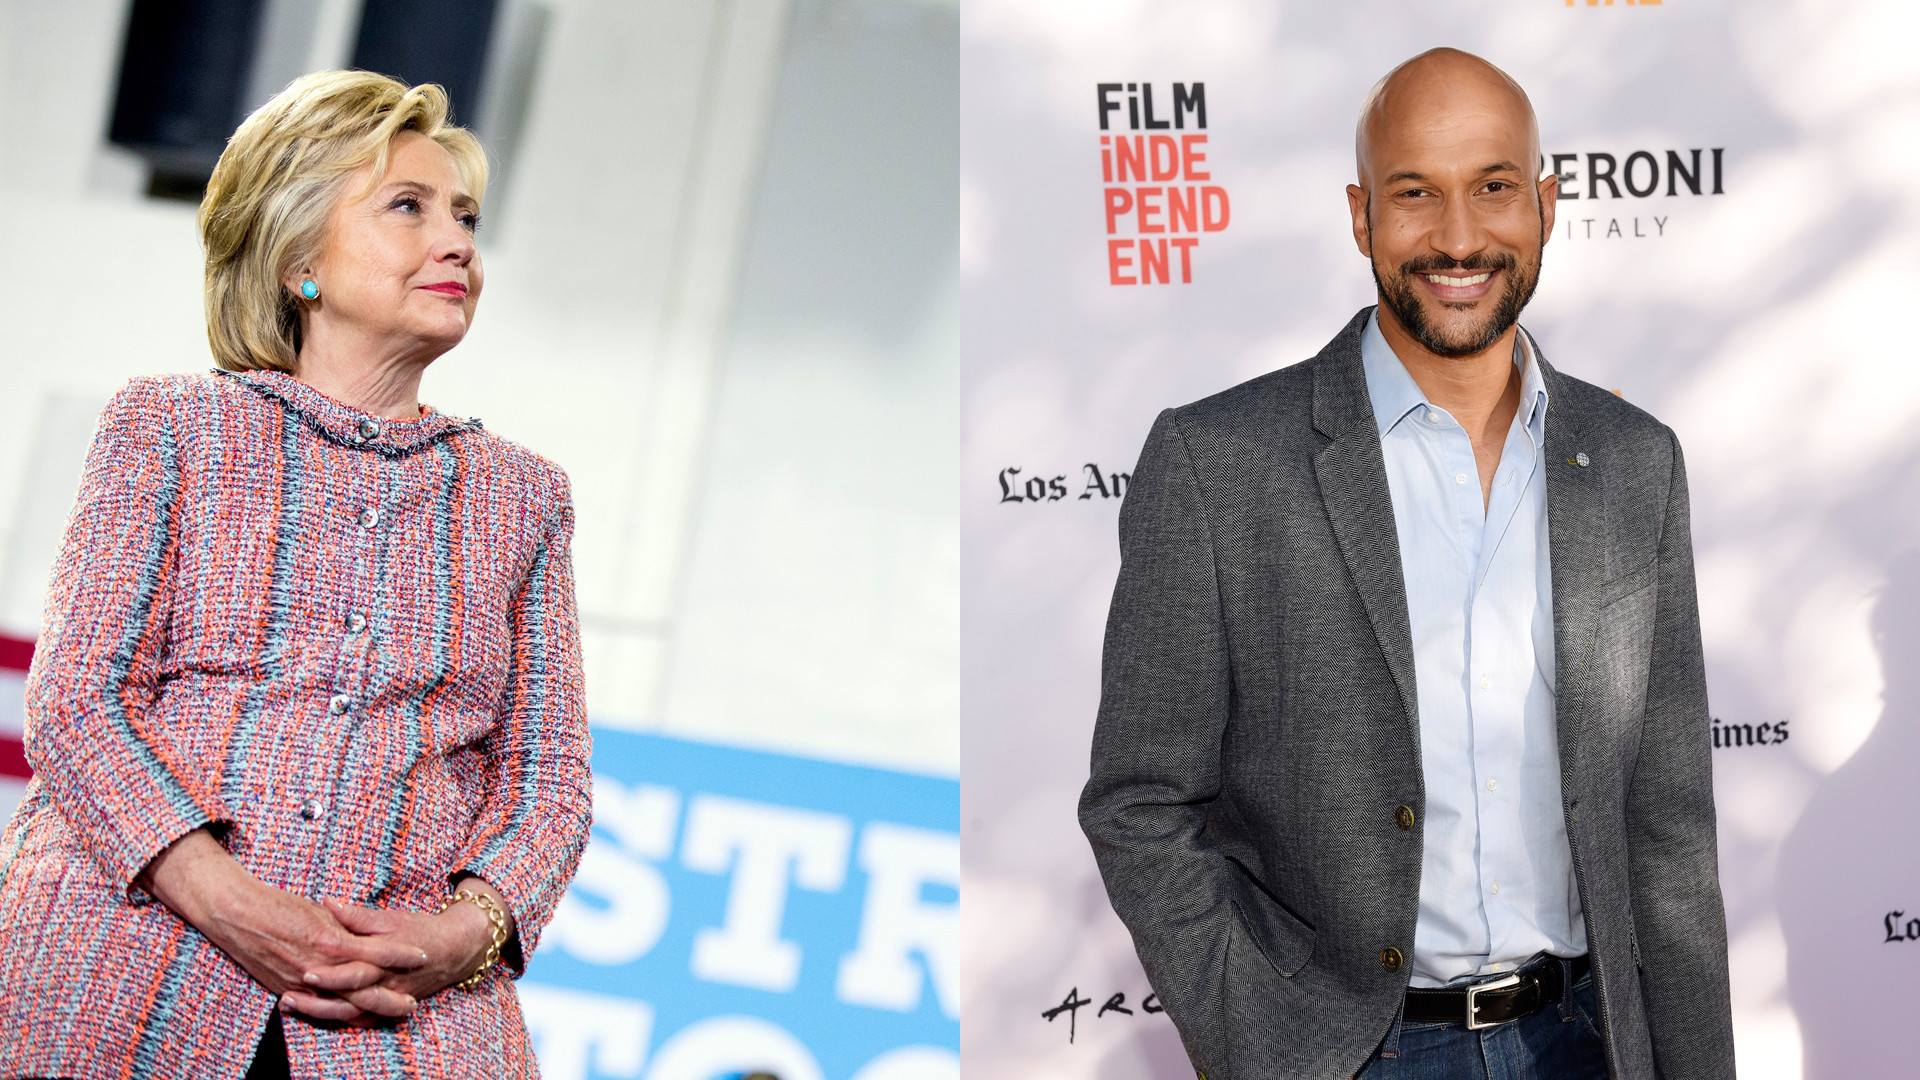 Watch Keegan Michael Key Don Chicago Accent To Imitate